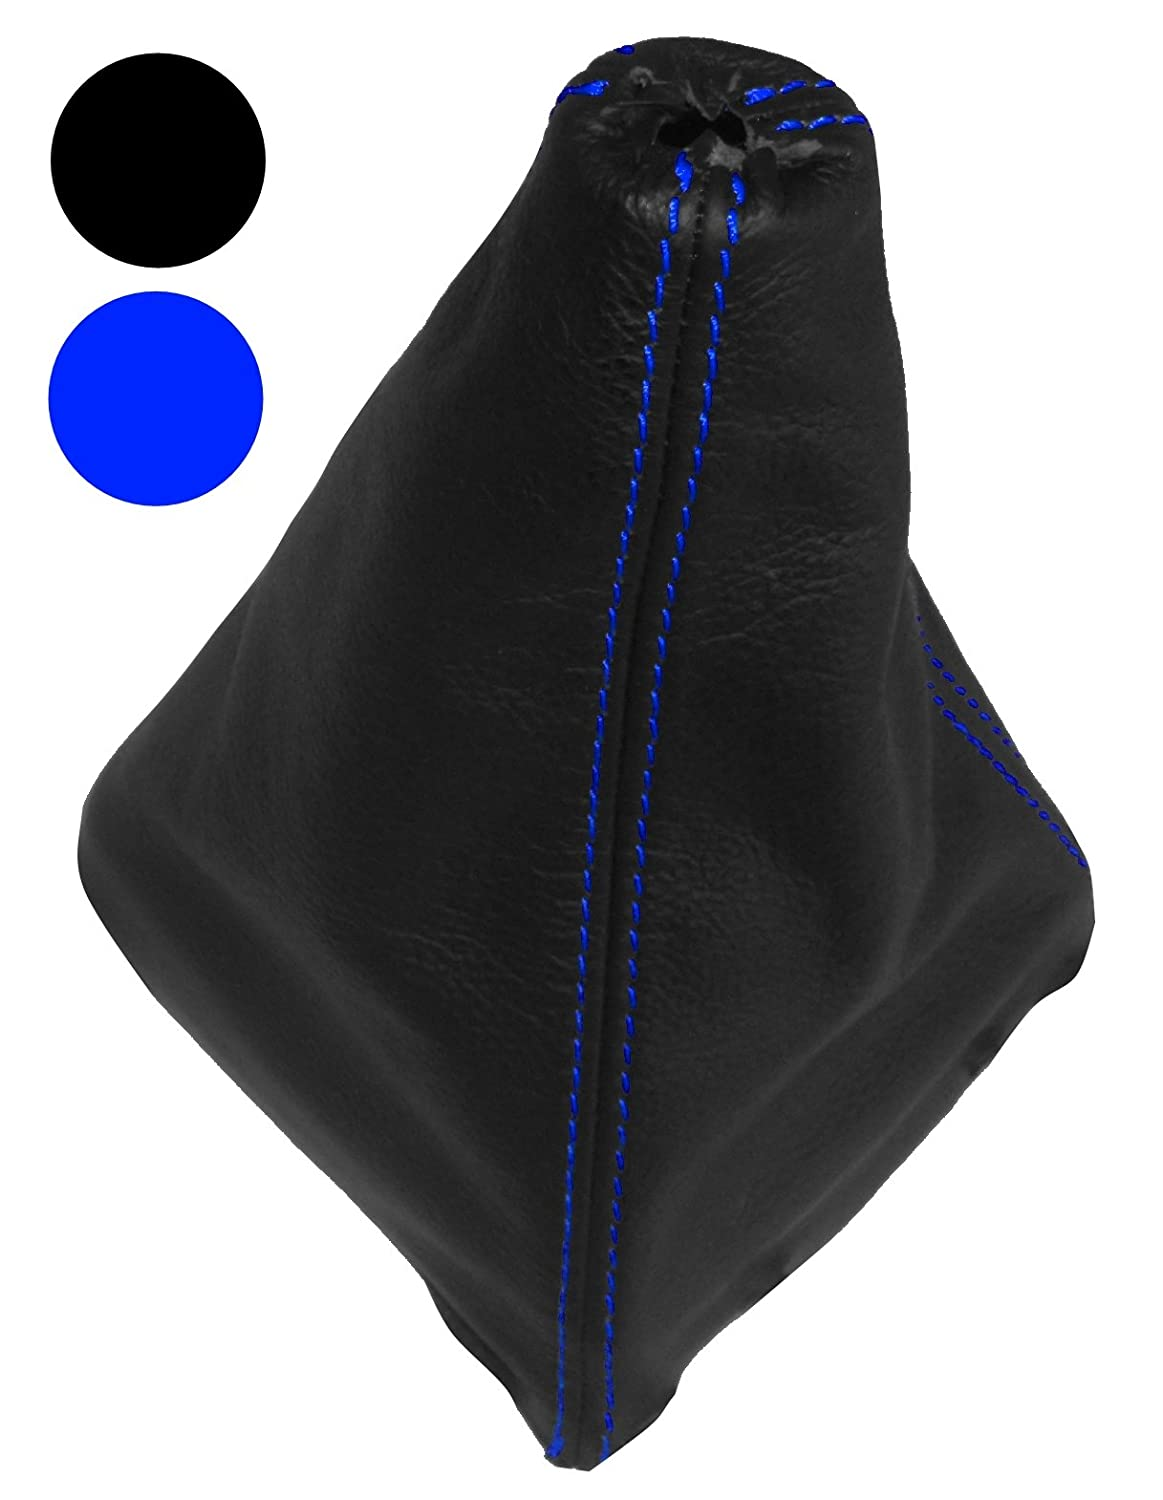 Blue stitching Gear Shift Lever Gaiter Aerzetix Cover made of 100/% Genuine Black Leather